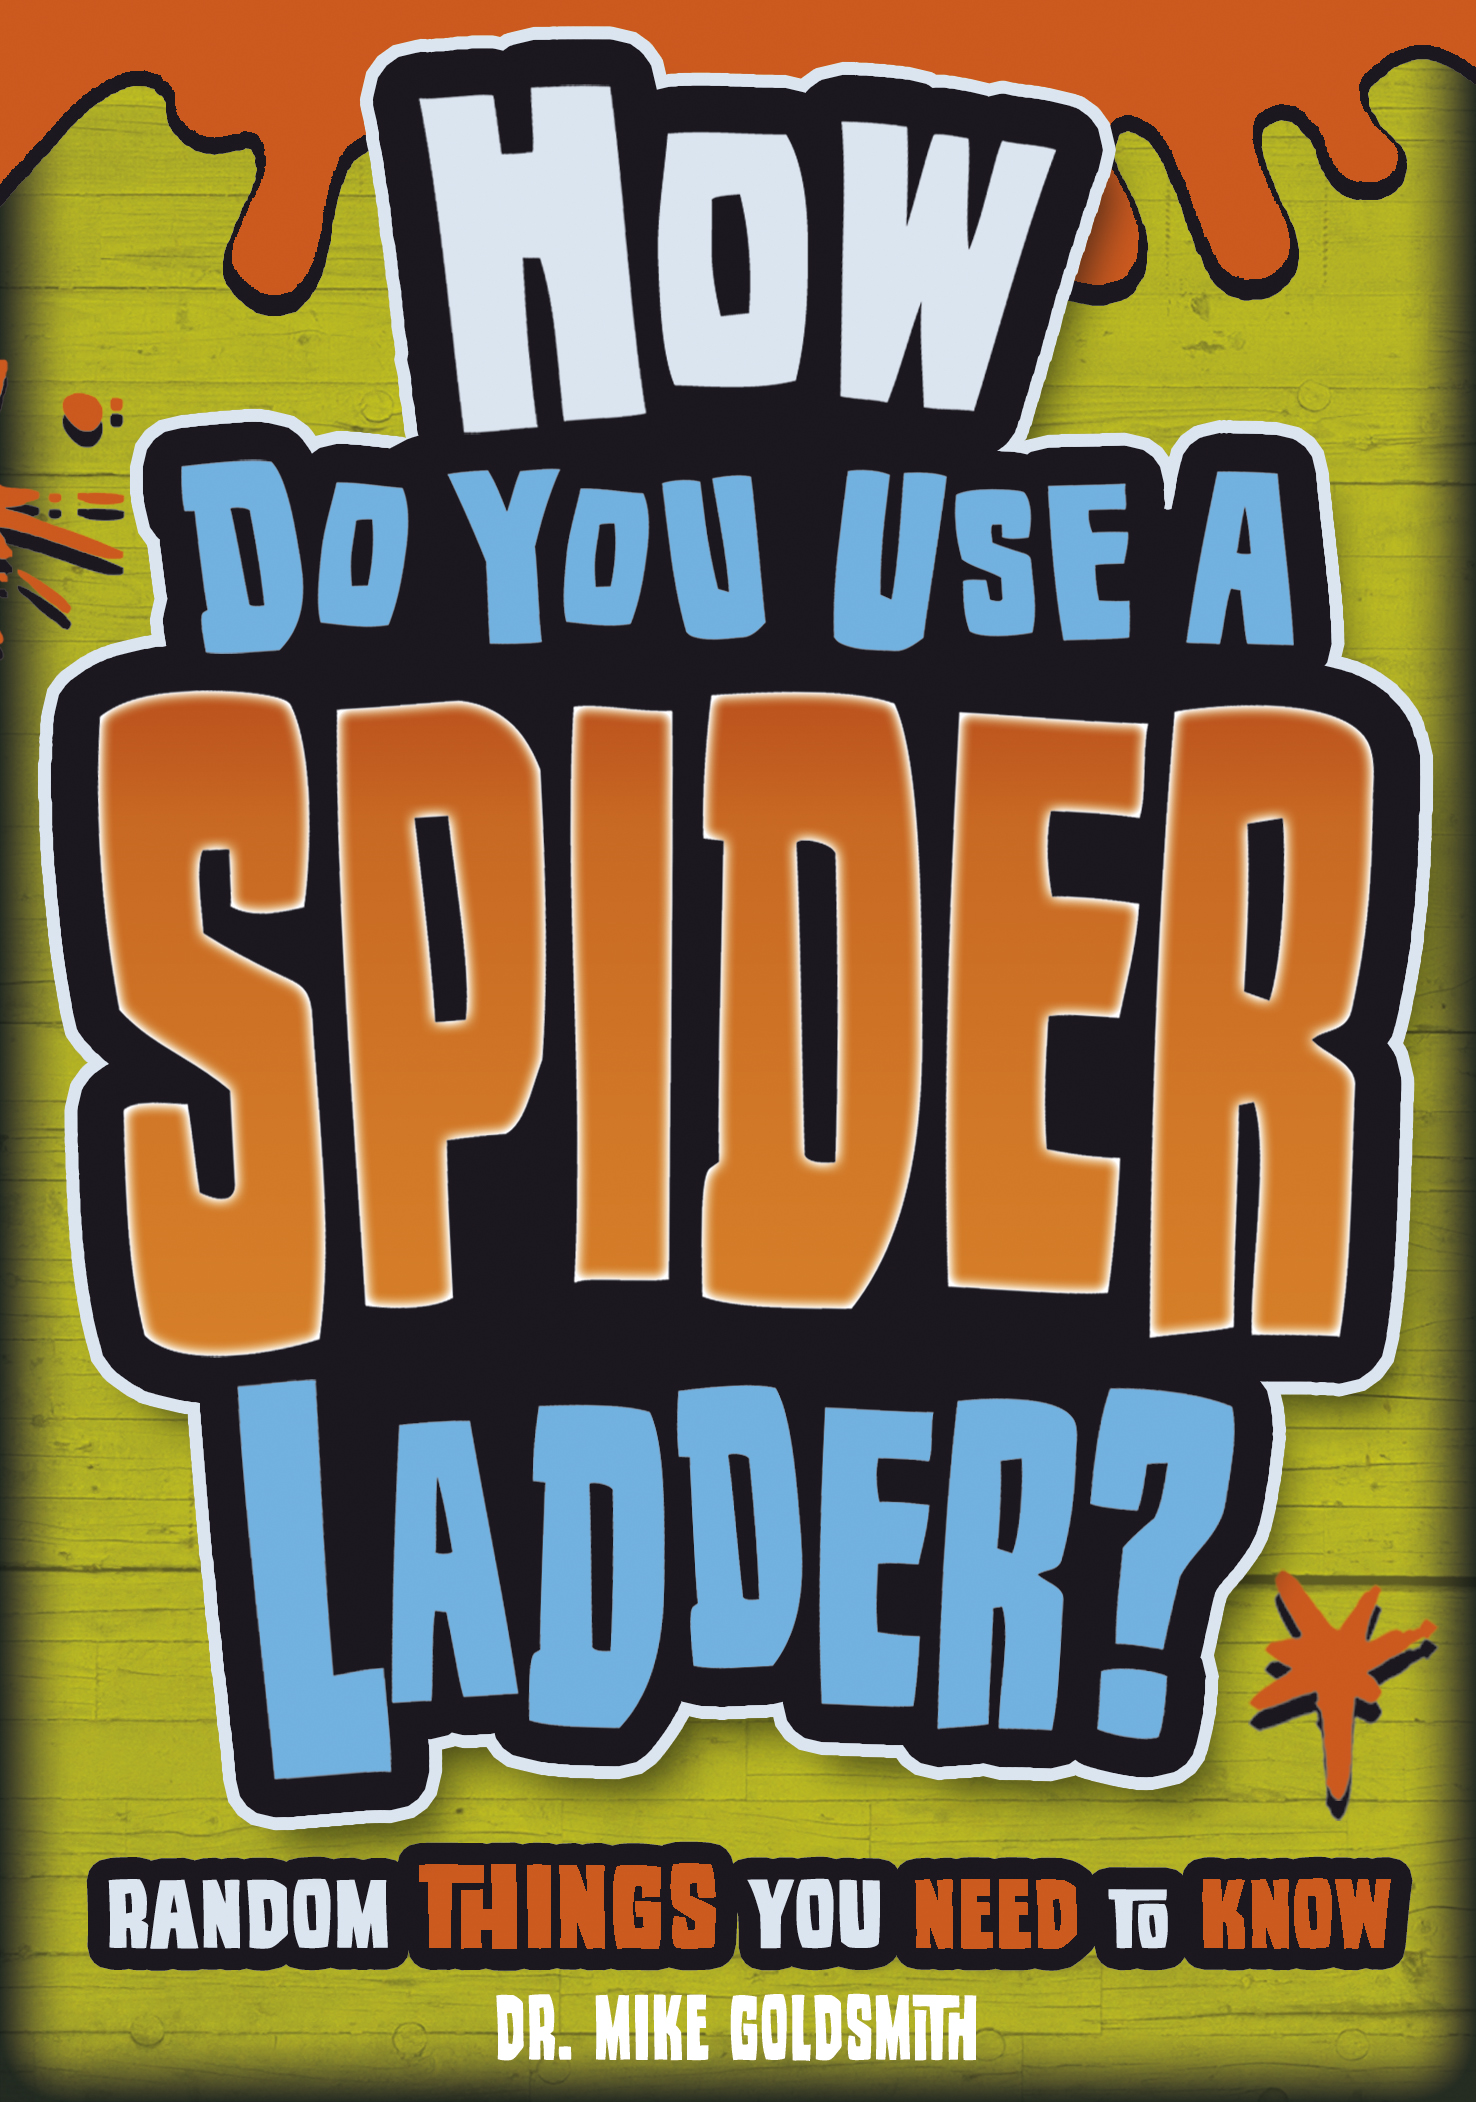 How do you Use a Spider Ladder?